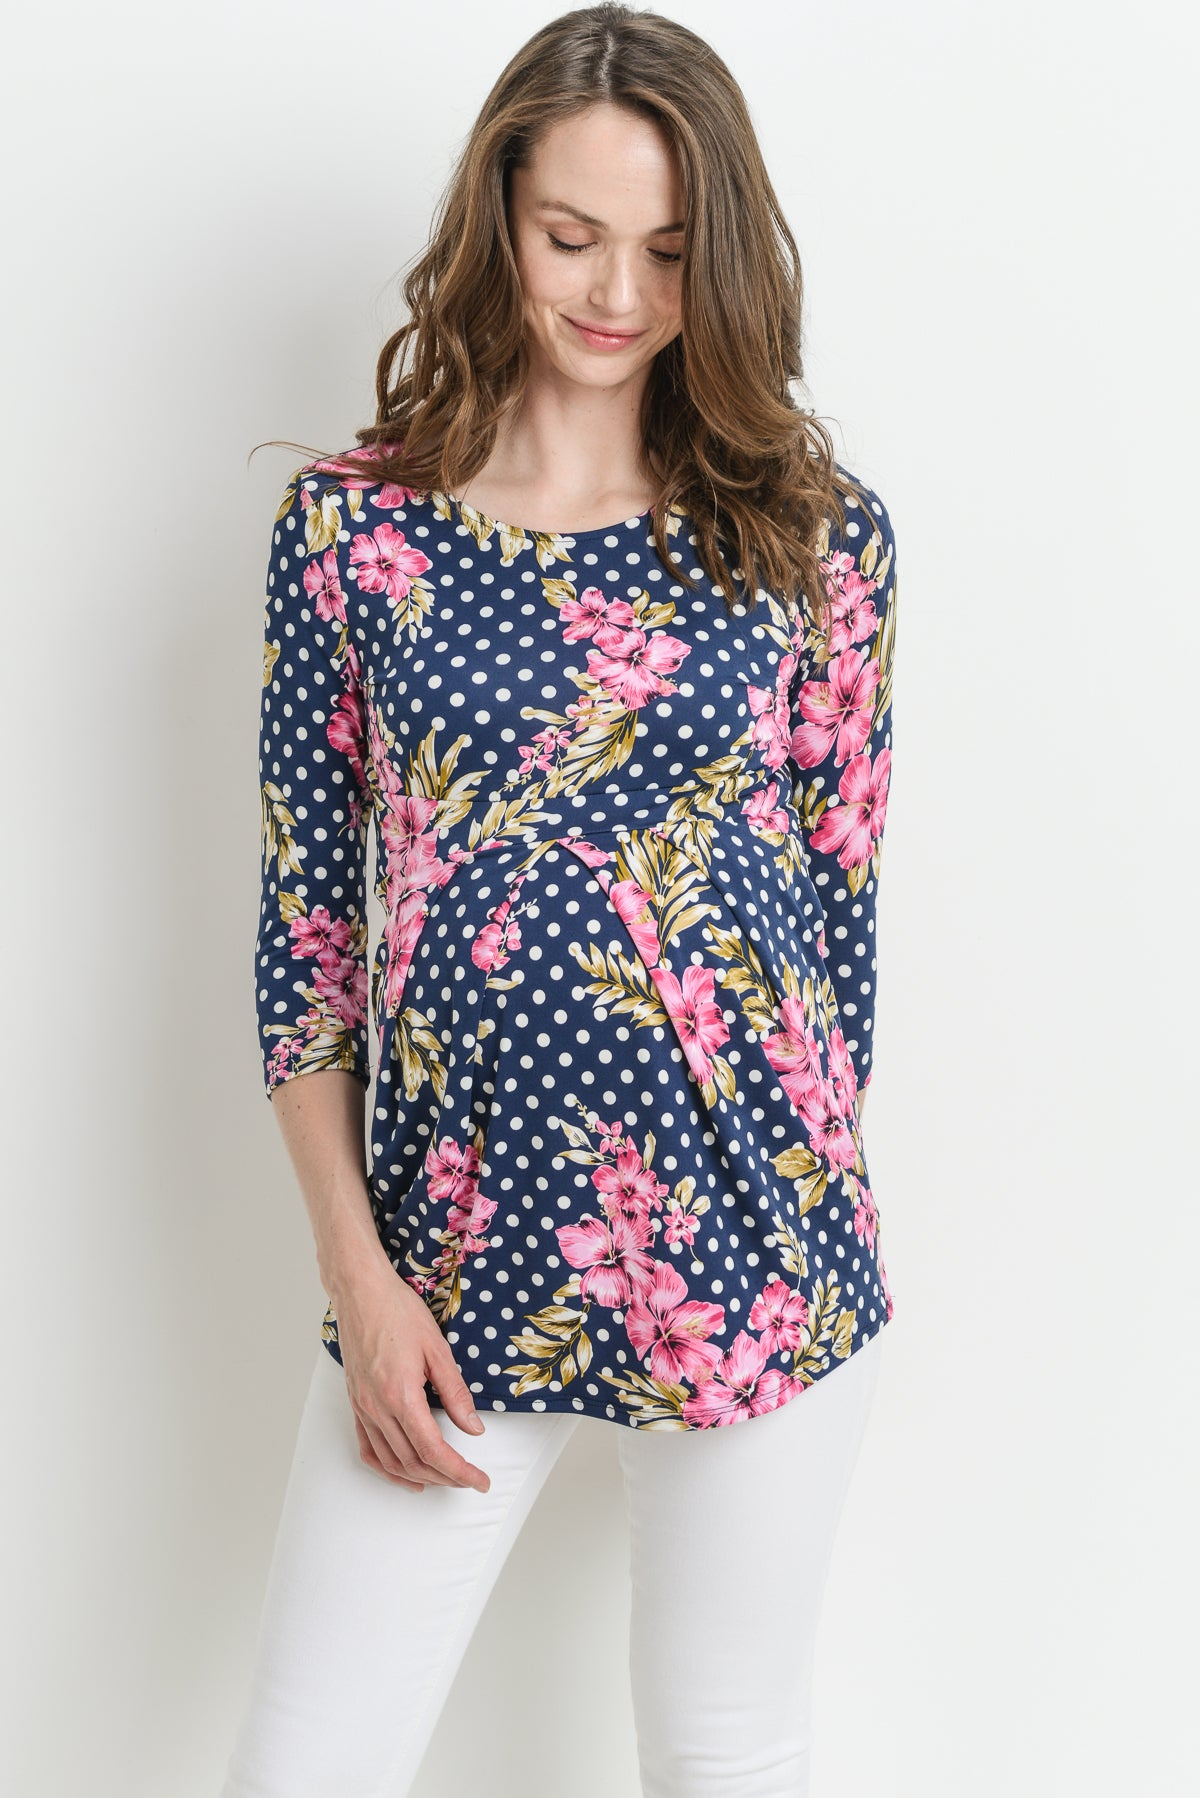 Dotted Floral Round Neck Peplum Maternity Top